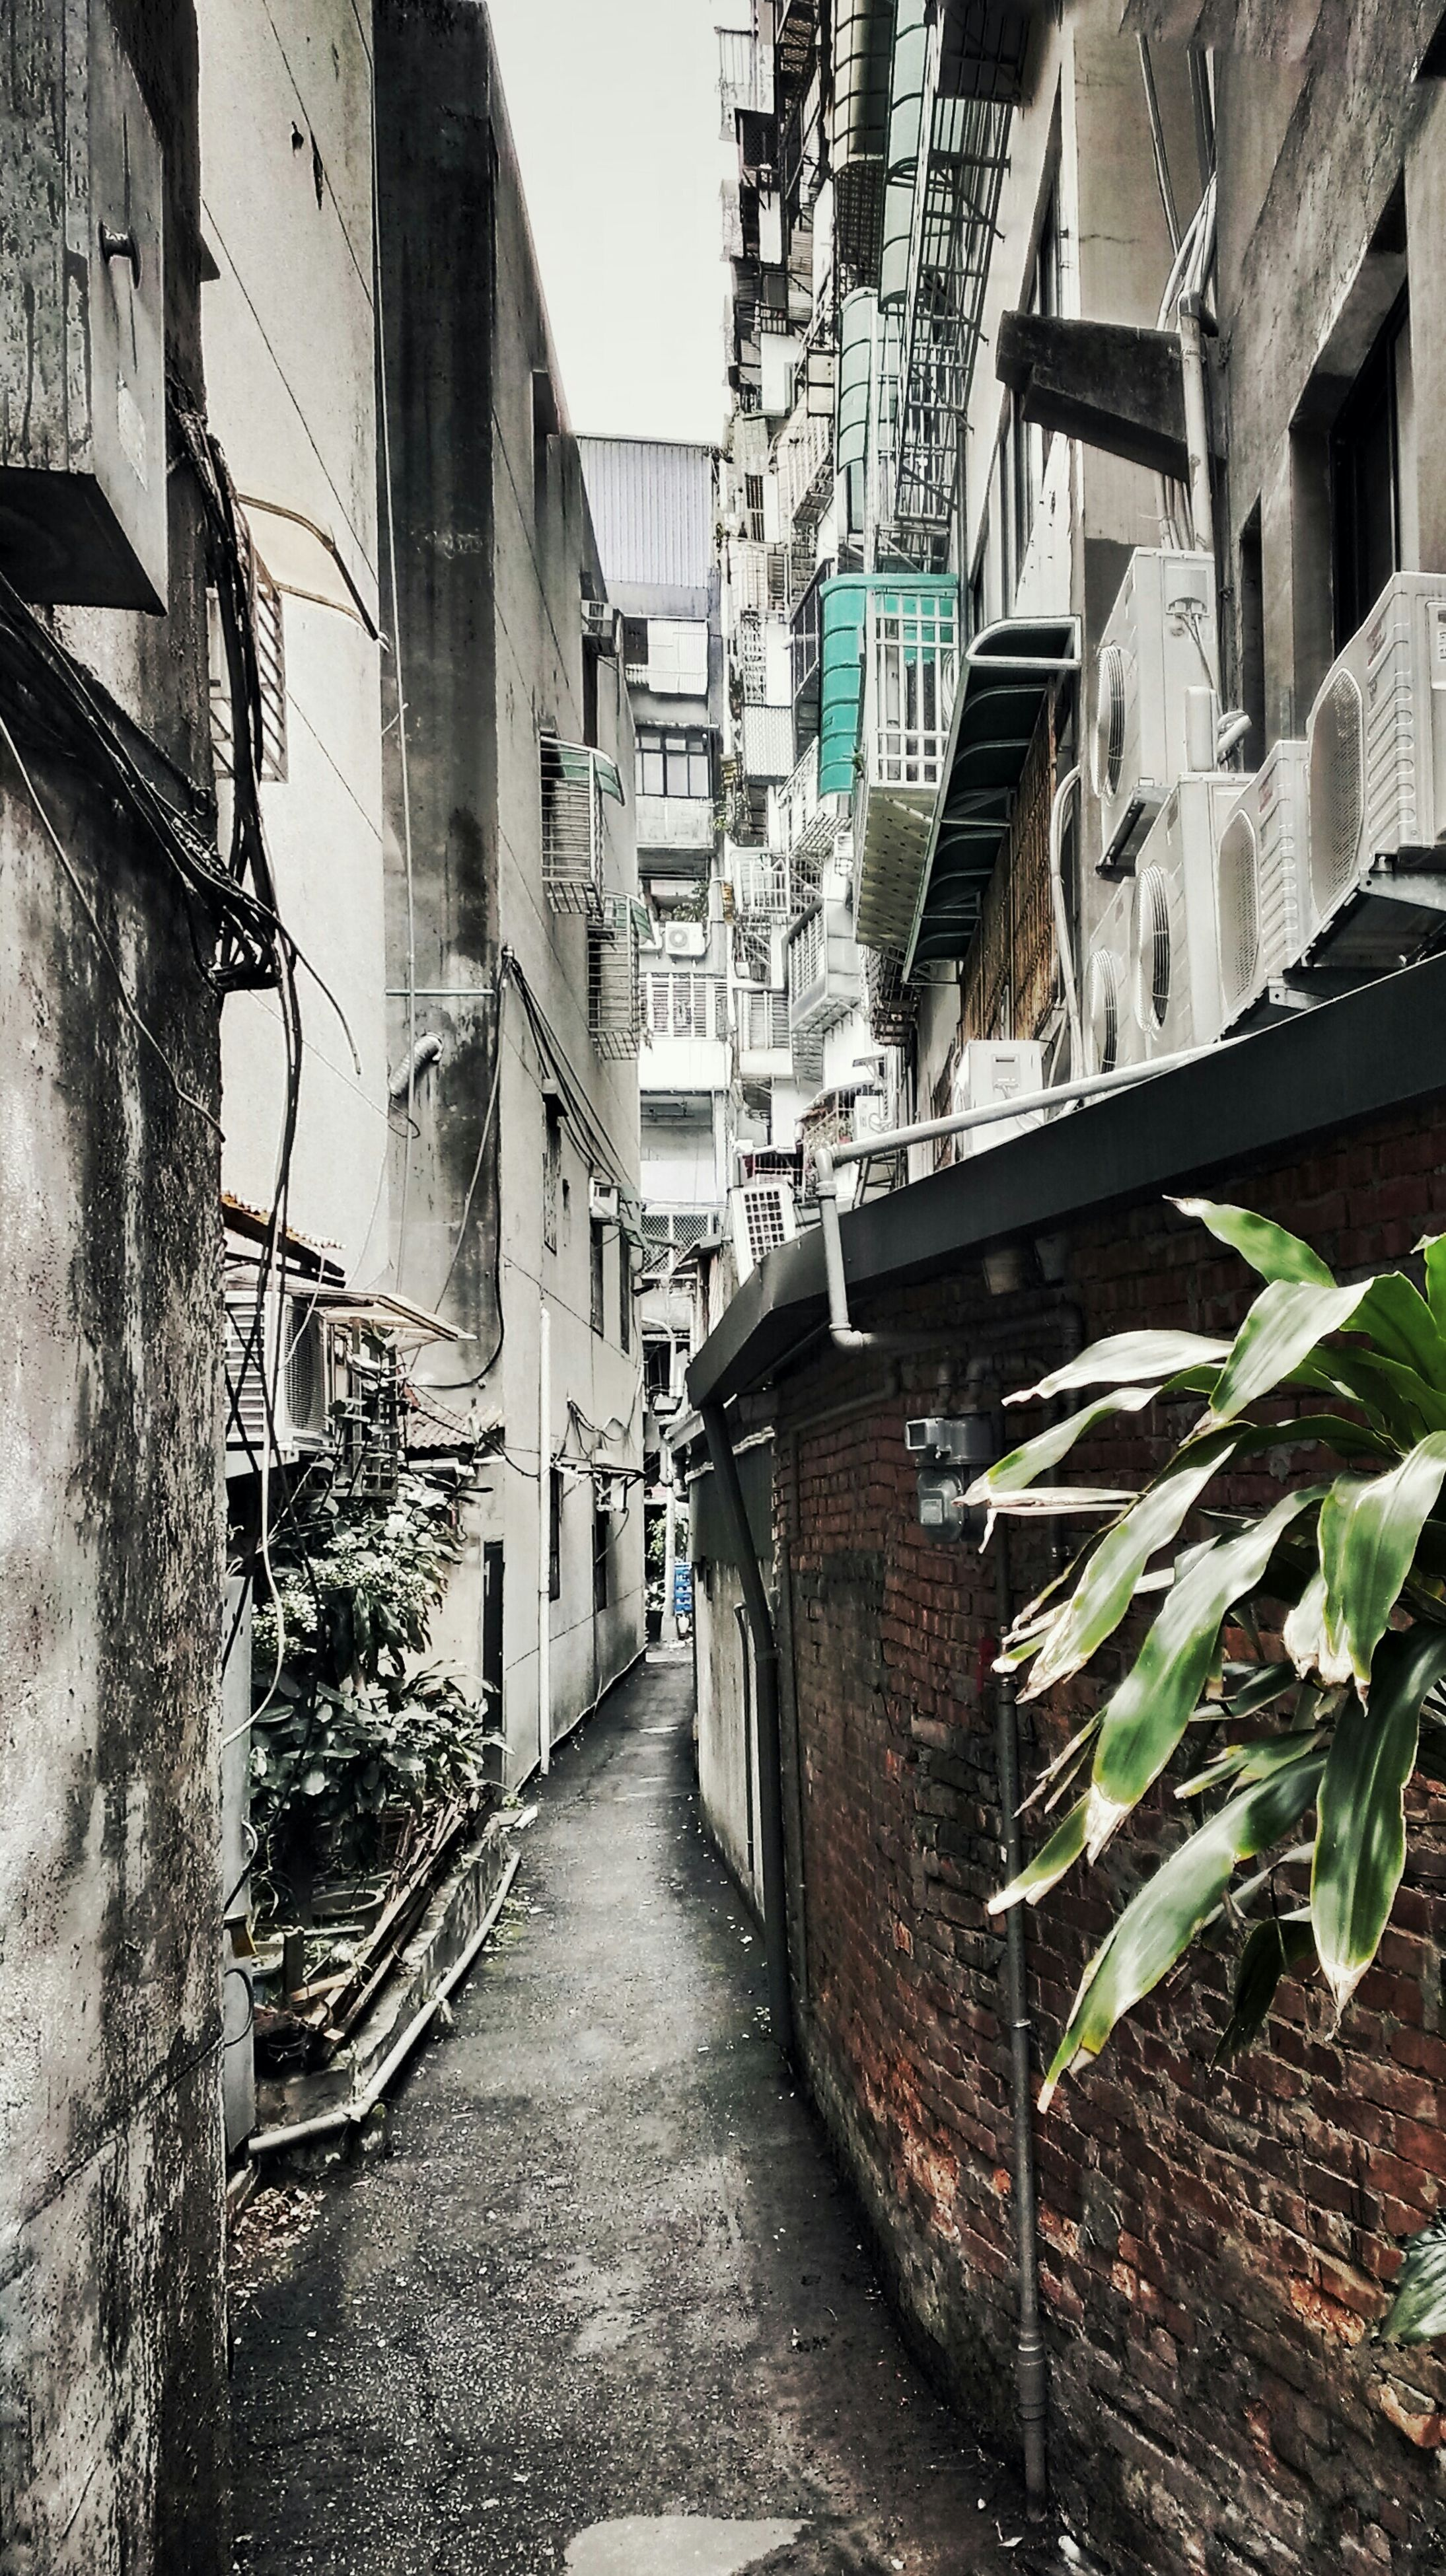 architecture, building exterior, built structure, the way forward, residential building, building, alley, residential structure, narrow, diminishing perspective, house, street, city, wall - building feature, vanishing point, day, window, wall, outdoors, no people